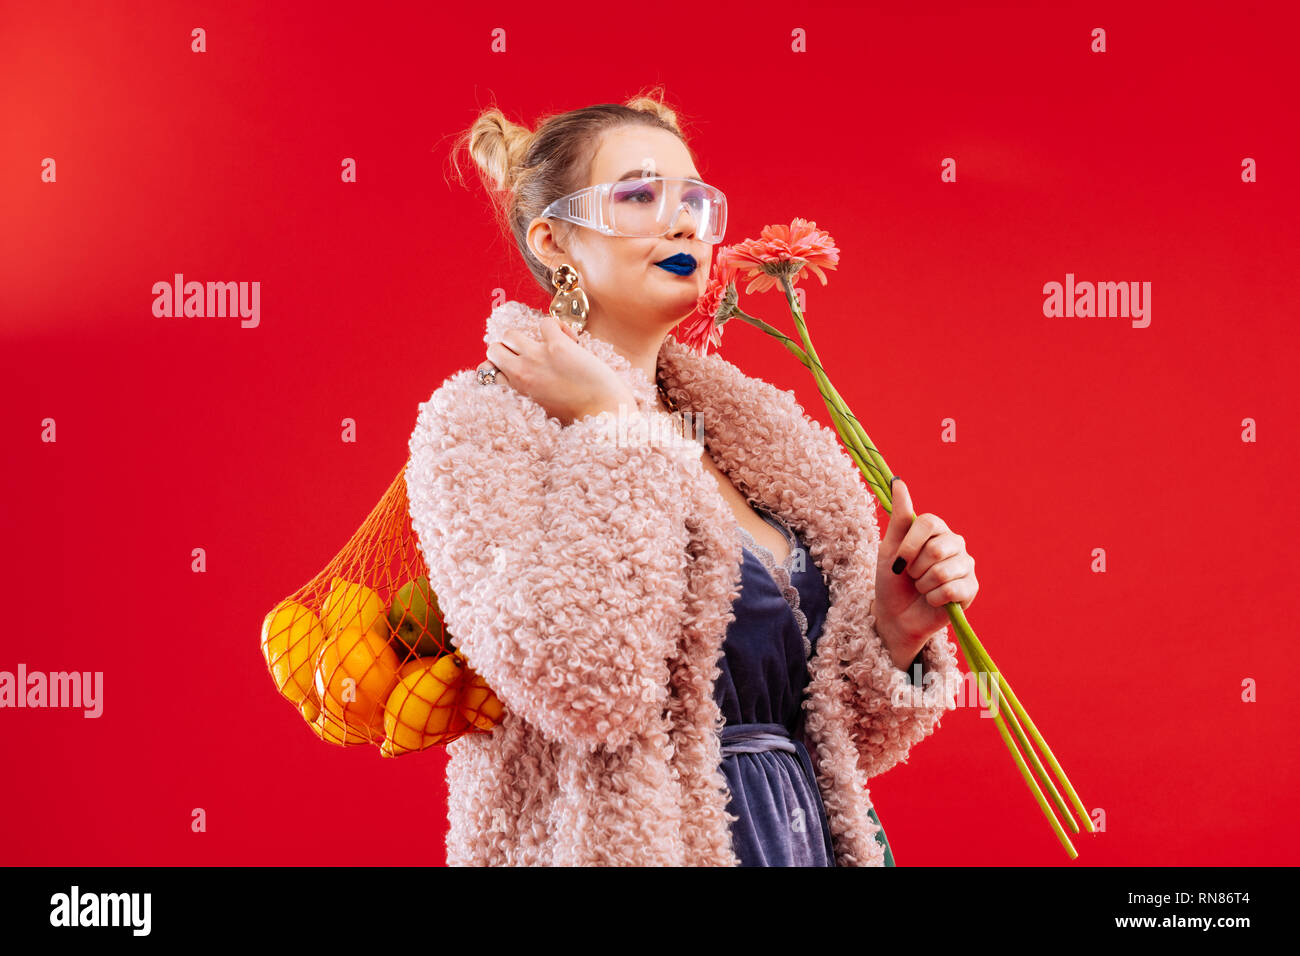 Woman with blue lips caring bag of fruits and pink flowers - Stock Image